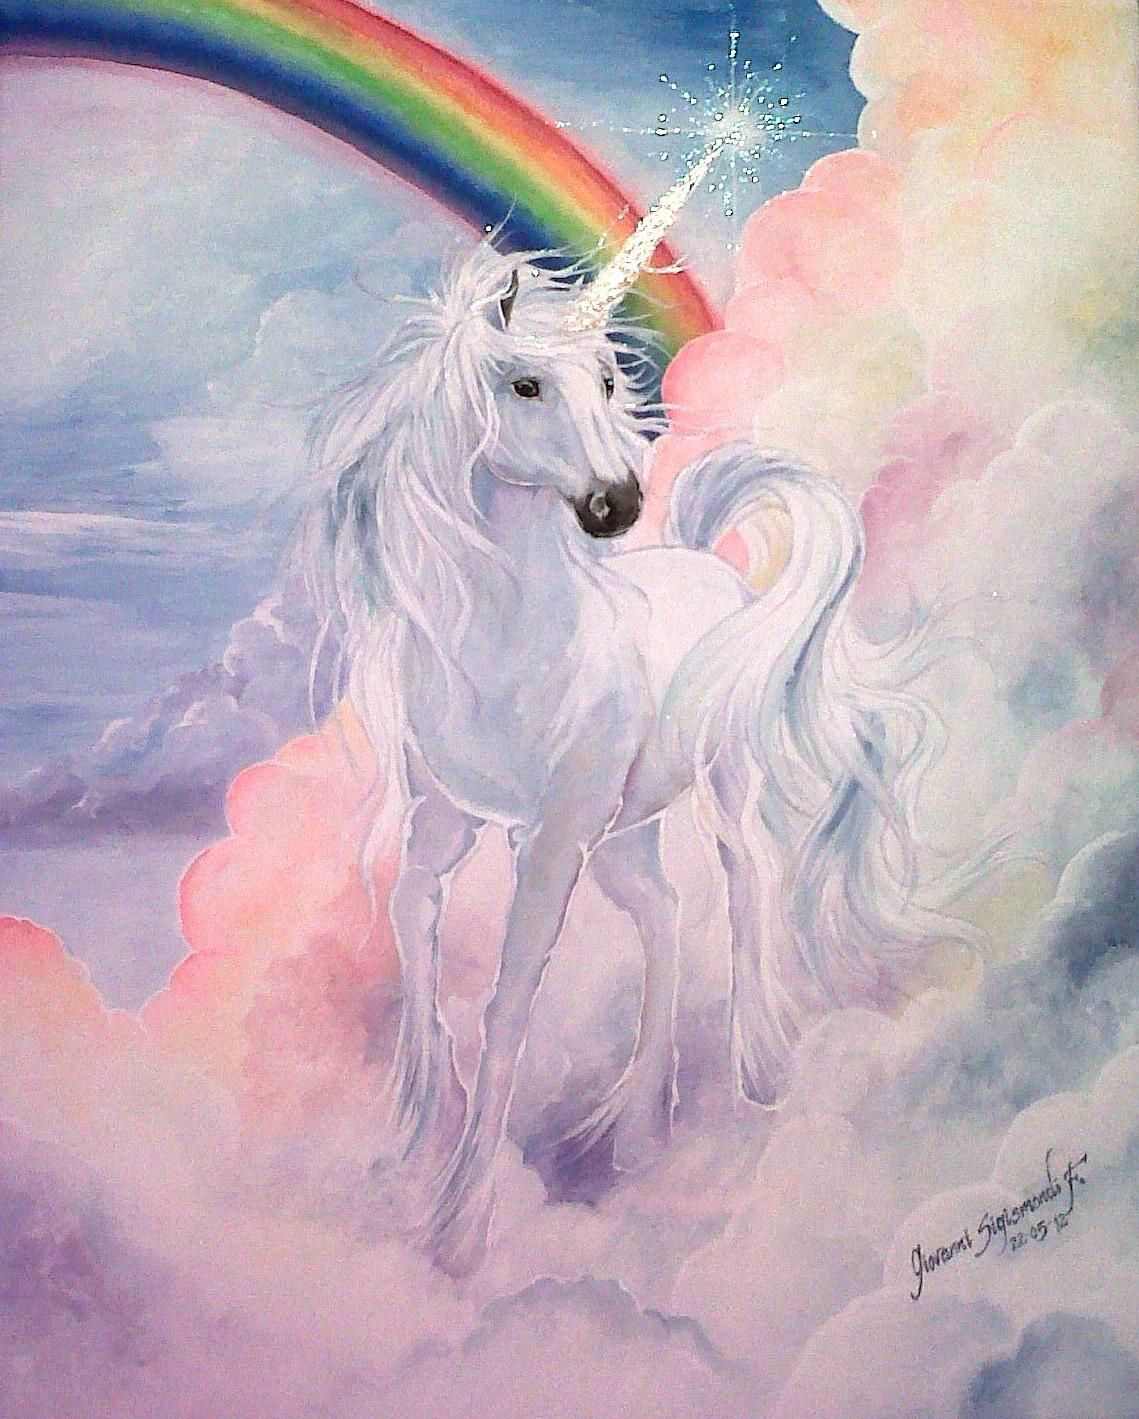 Lienzo Al Acrilico 60x50 Cm Unicorn Painting Unicorn And